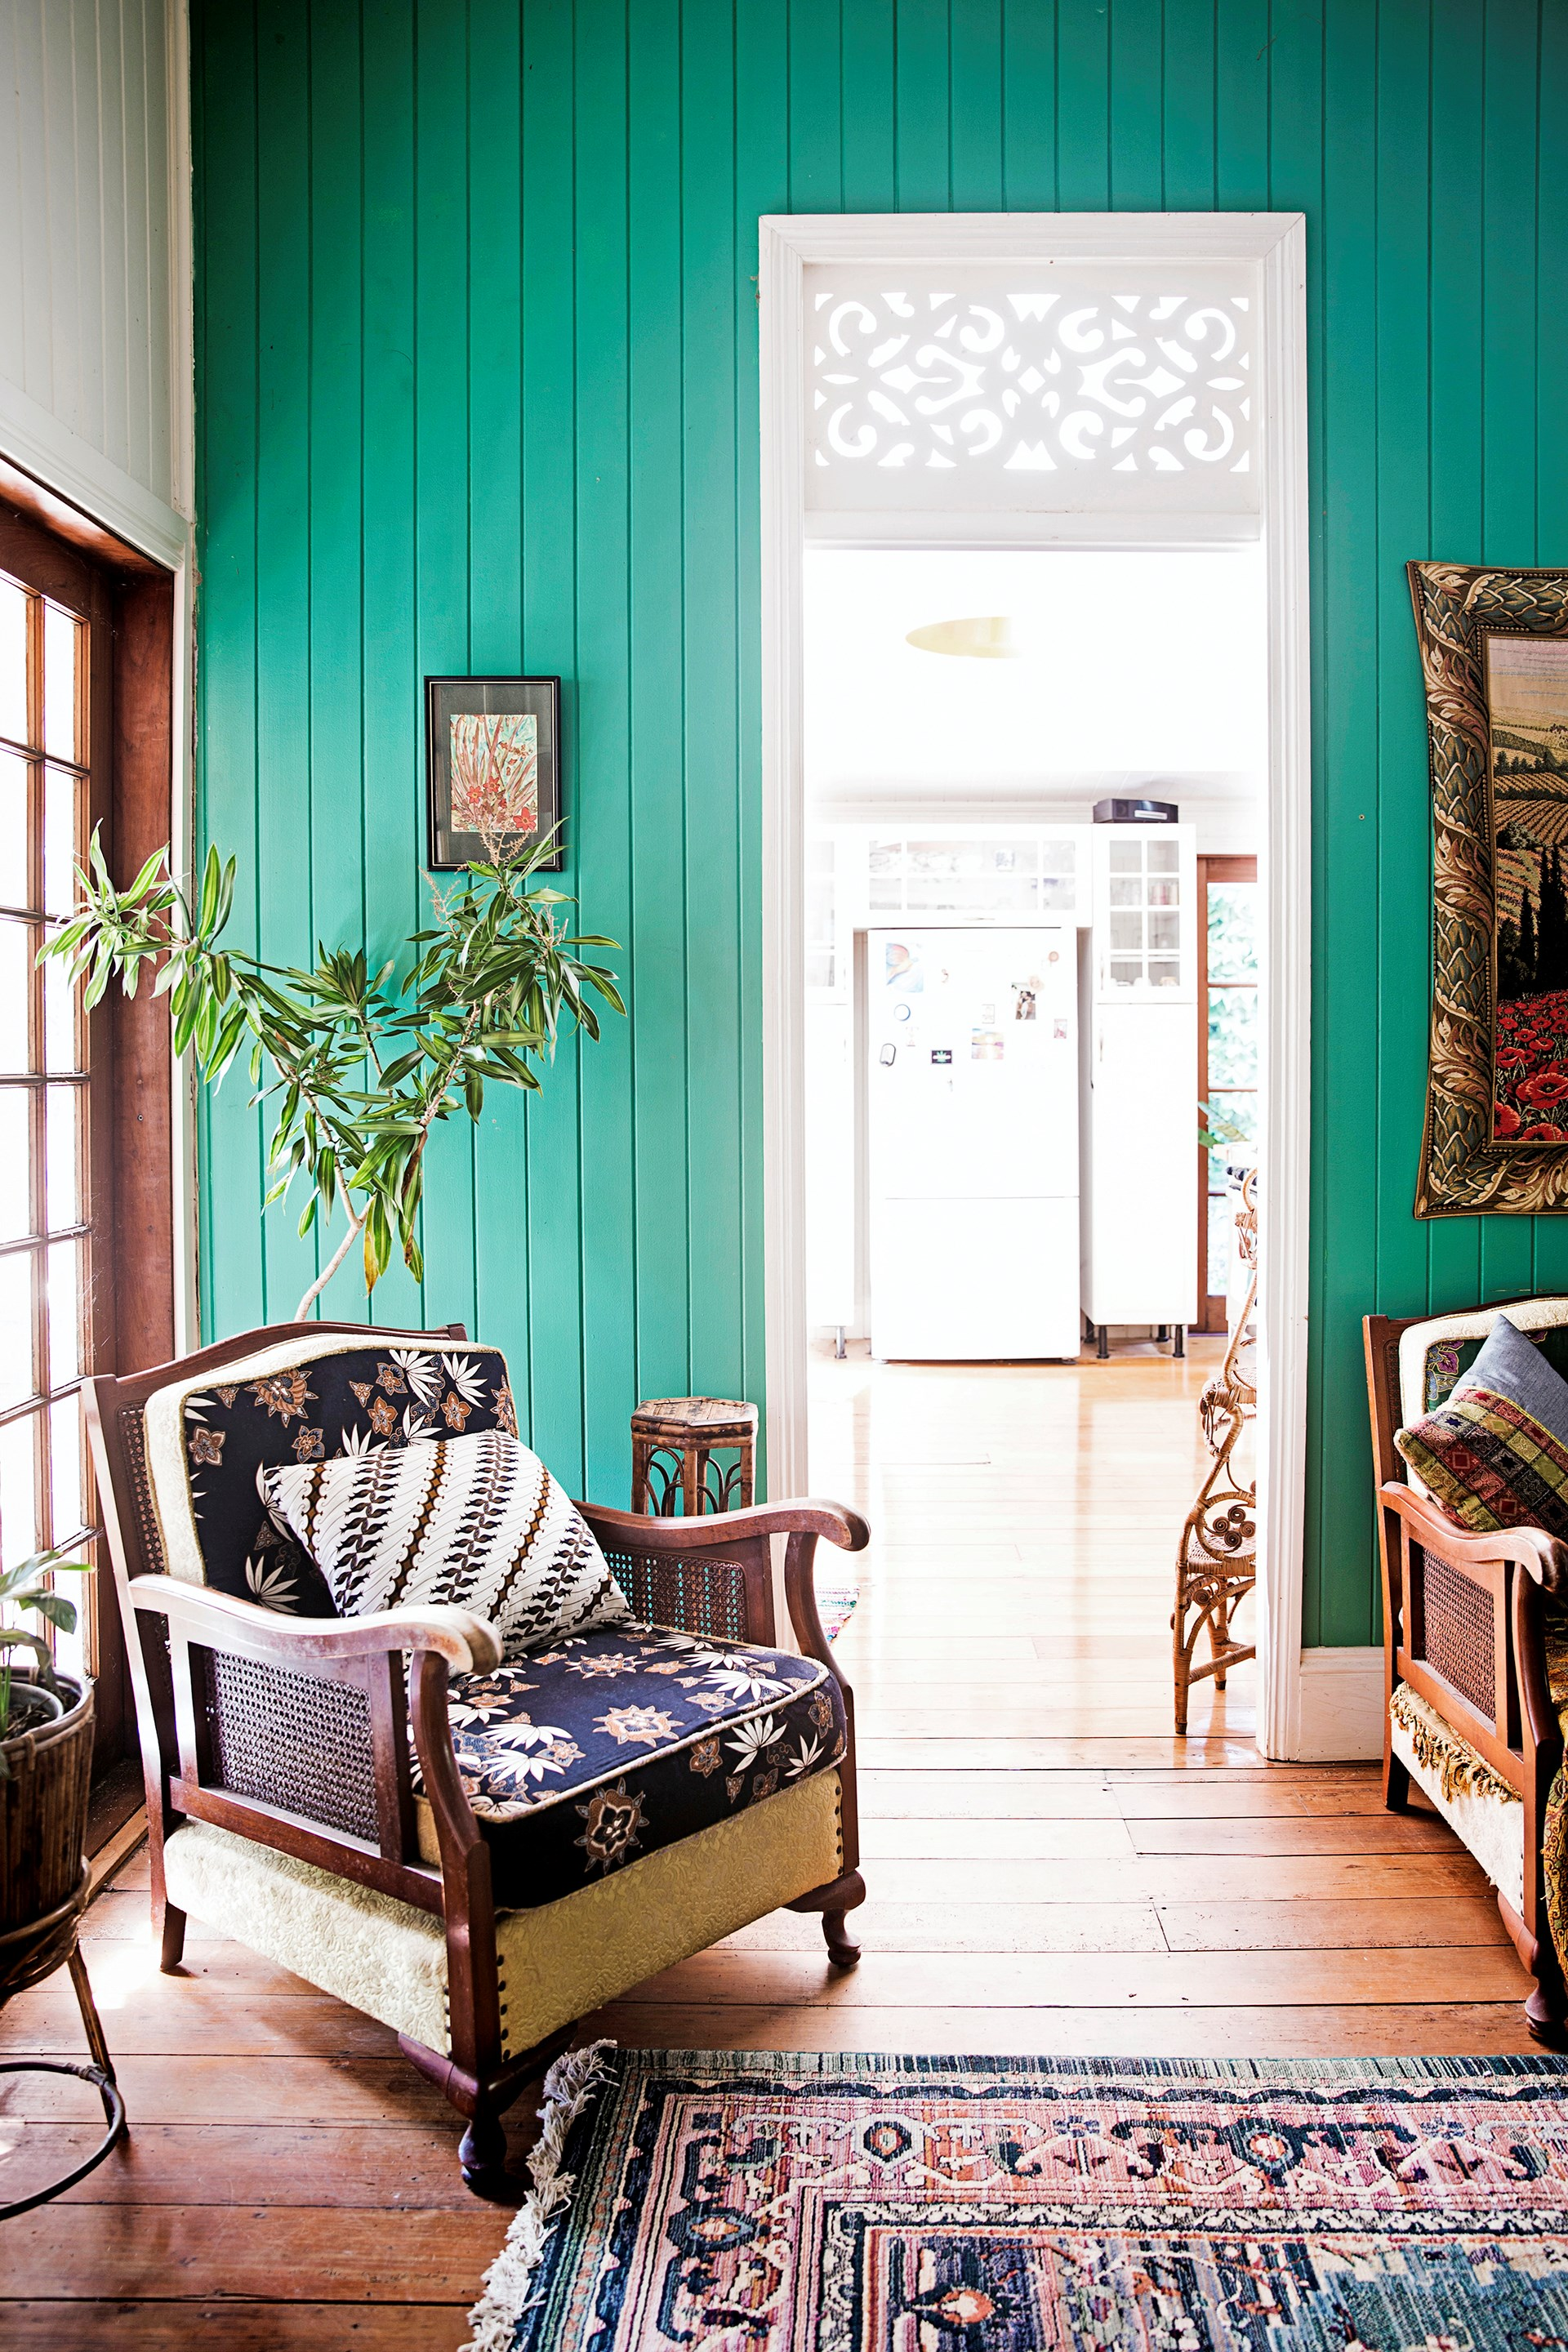 Vintage pieces and retro finds have forged a unique and eclectic style in this [holiday-style Queenslander home](http://www.homestolove.com.au/old-is-new-again-in-this-revamped-queenslander-3532).Photo: James Henry